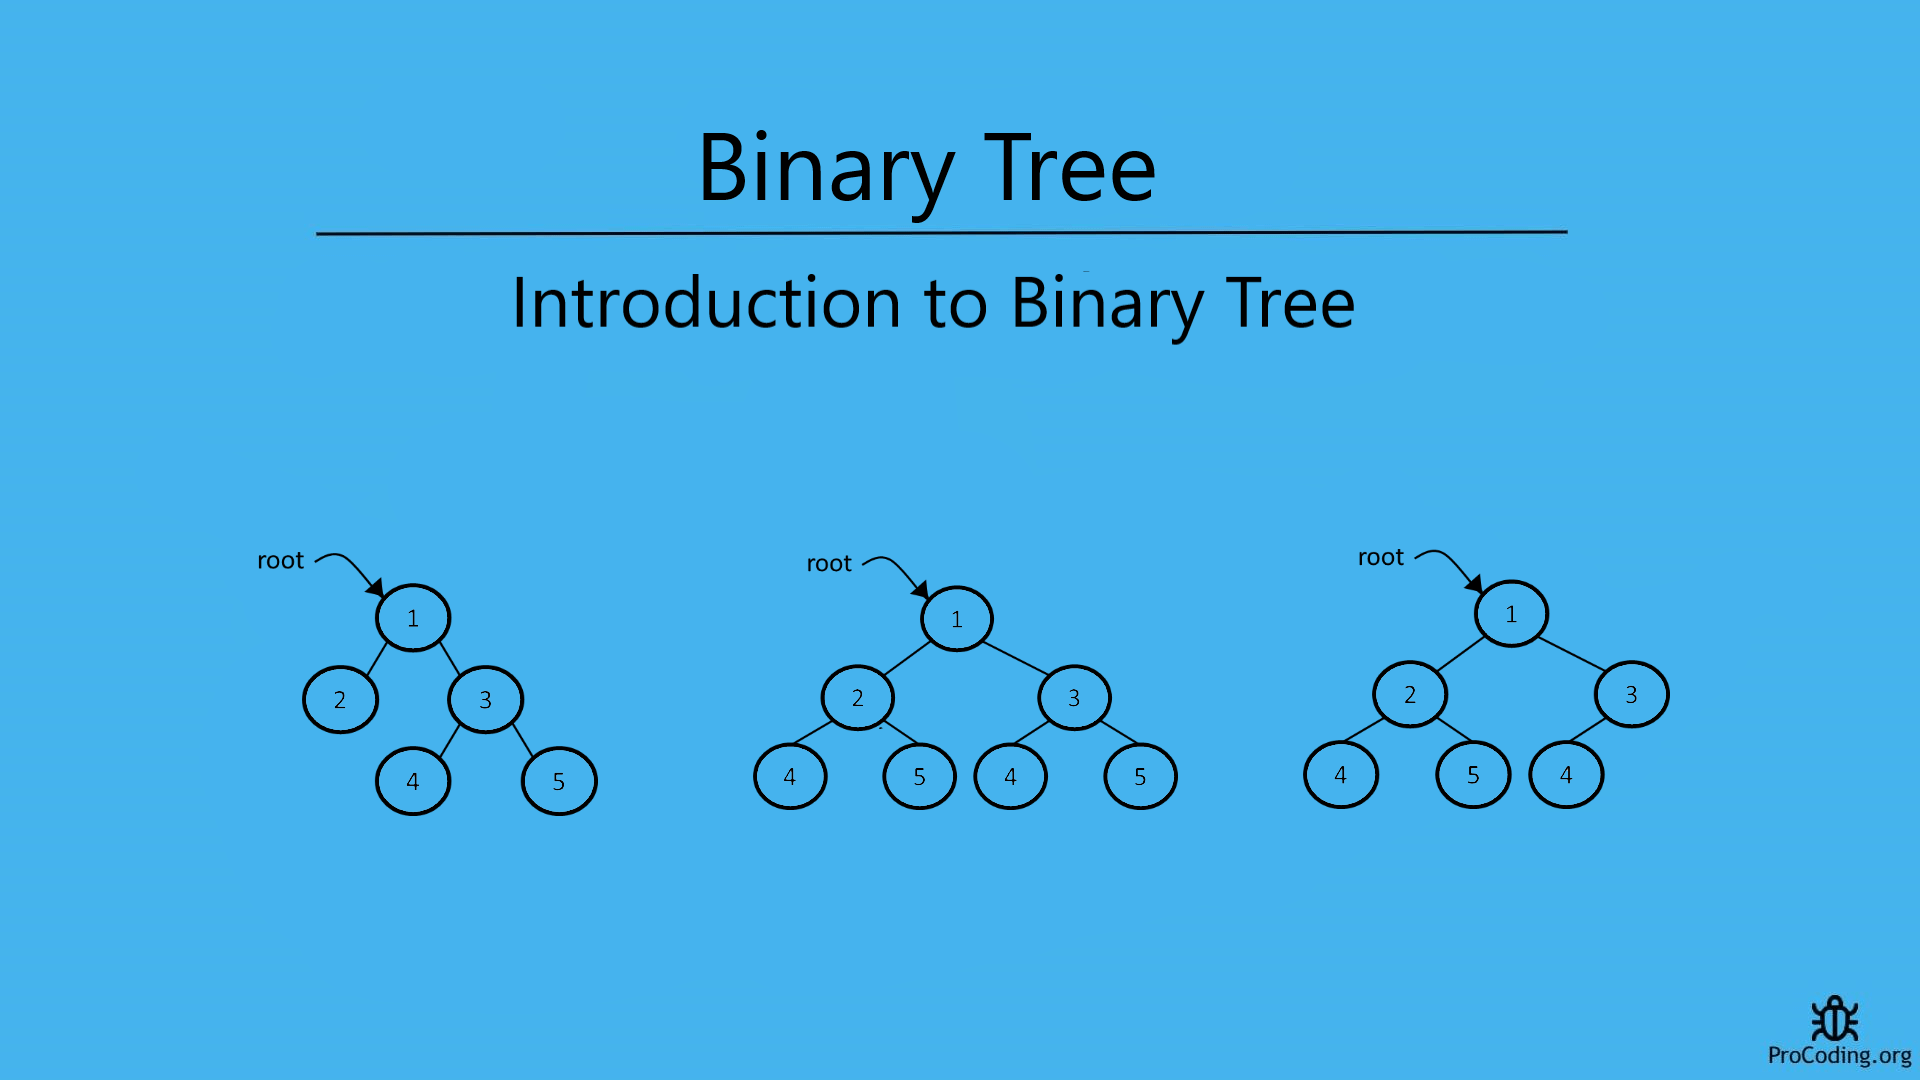 Introduction to binary trees